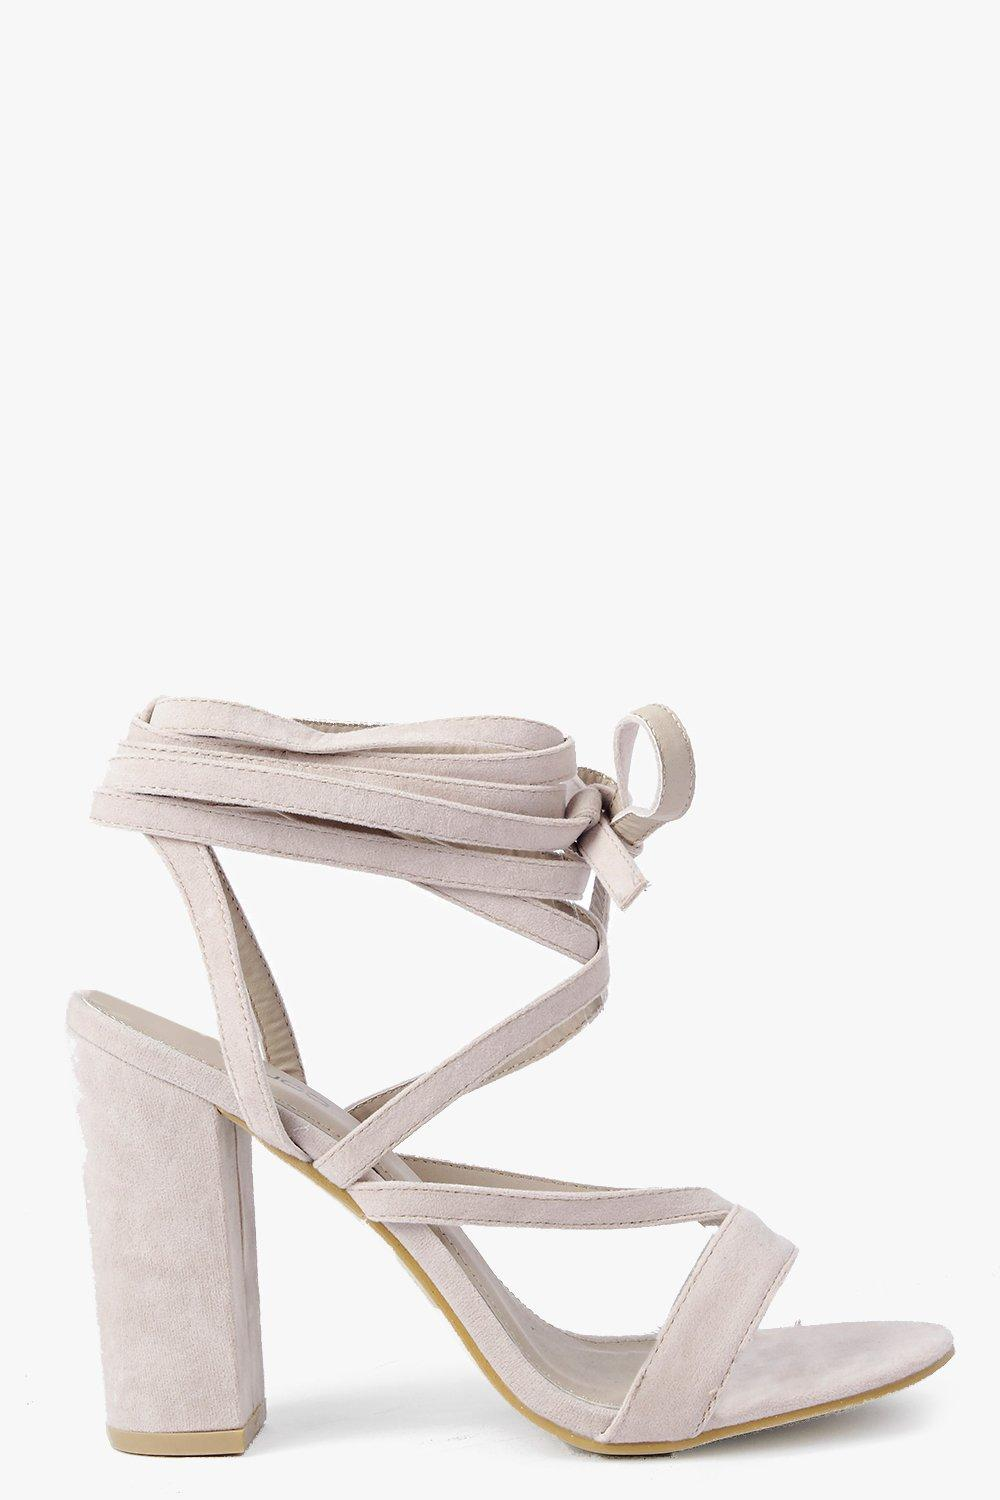 87fc0c1f06f6 Womens Nude Wrap Strap Two Part Block Heels. Hover to zoom